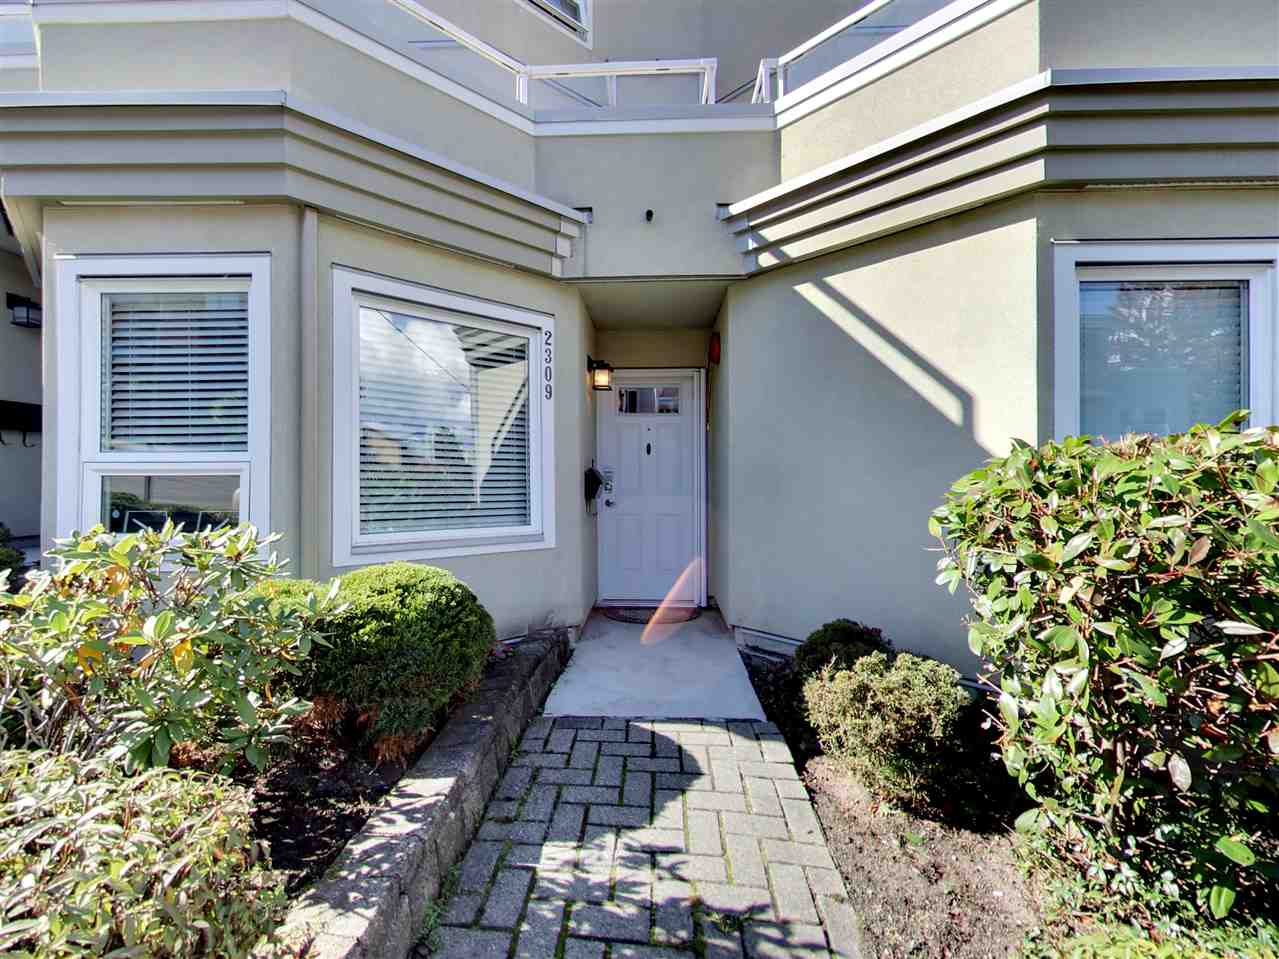 Photo 12: 2309 ALDER STREET in Vancouver: Fairview VW Condo for sale (Vancouver West)  : MLS(r) # R2115607